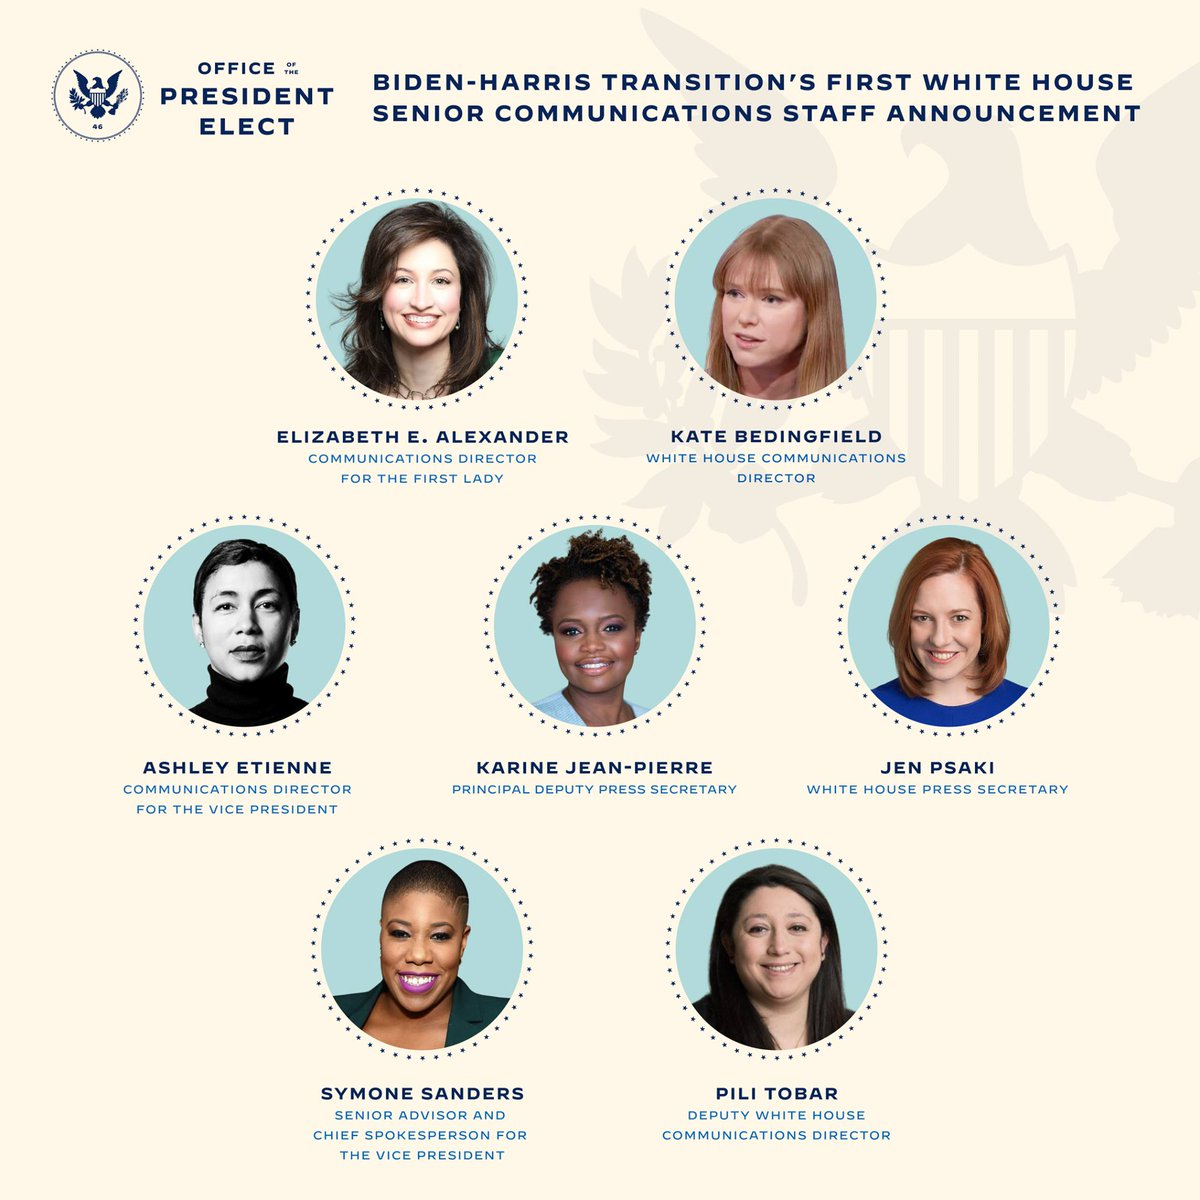 The Communications team in the #WhiteHouse will be led by a team of women for the first time EVER during the #BidenHarris administration   #press #PR #publicrelations #government #politics #BidenHarris2020